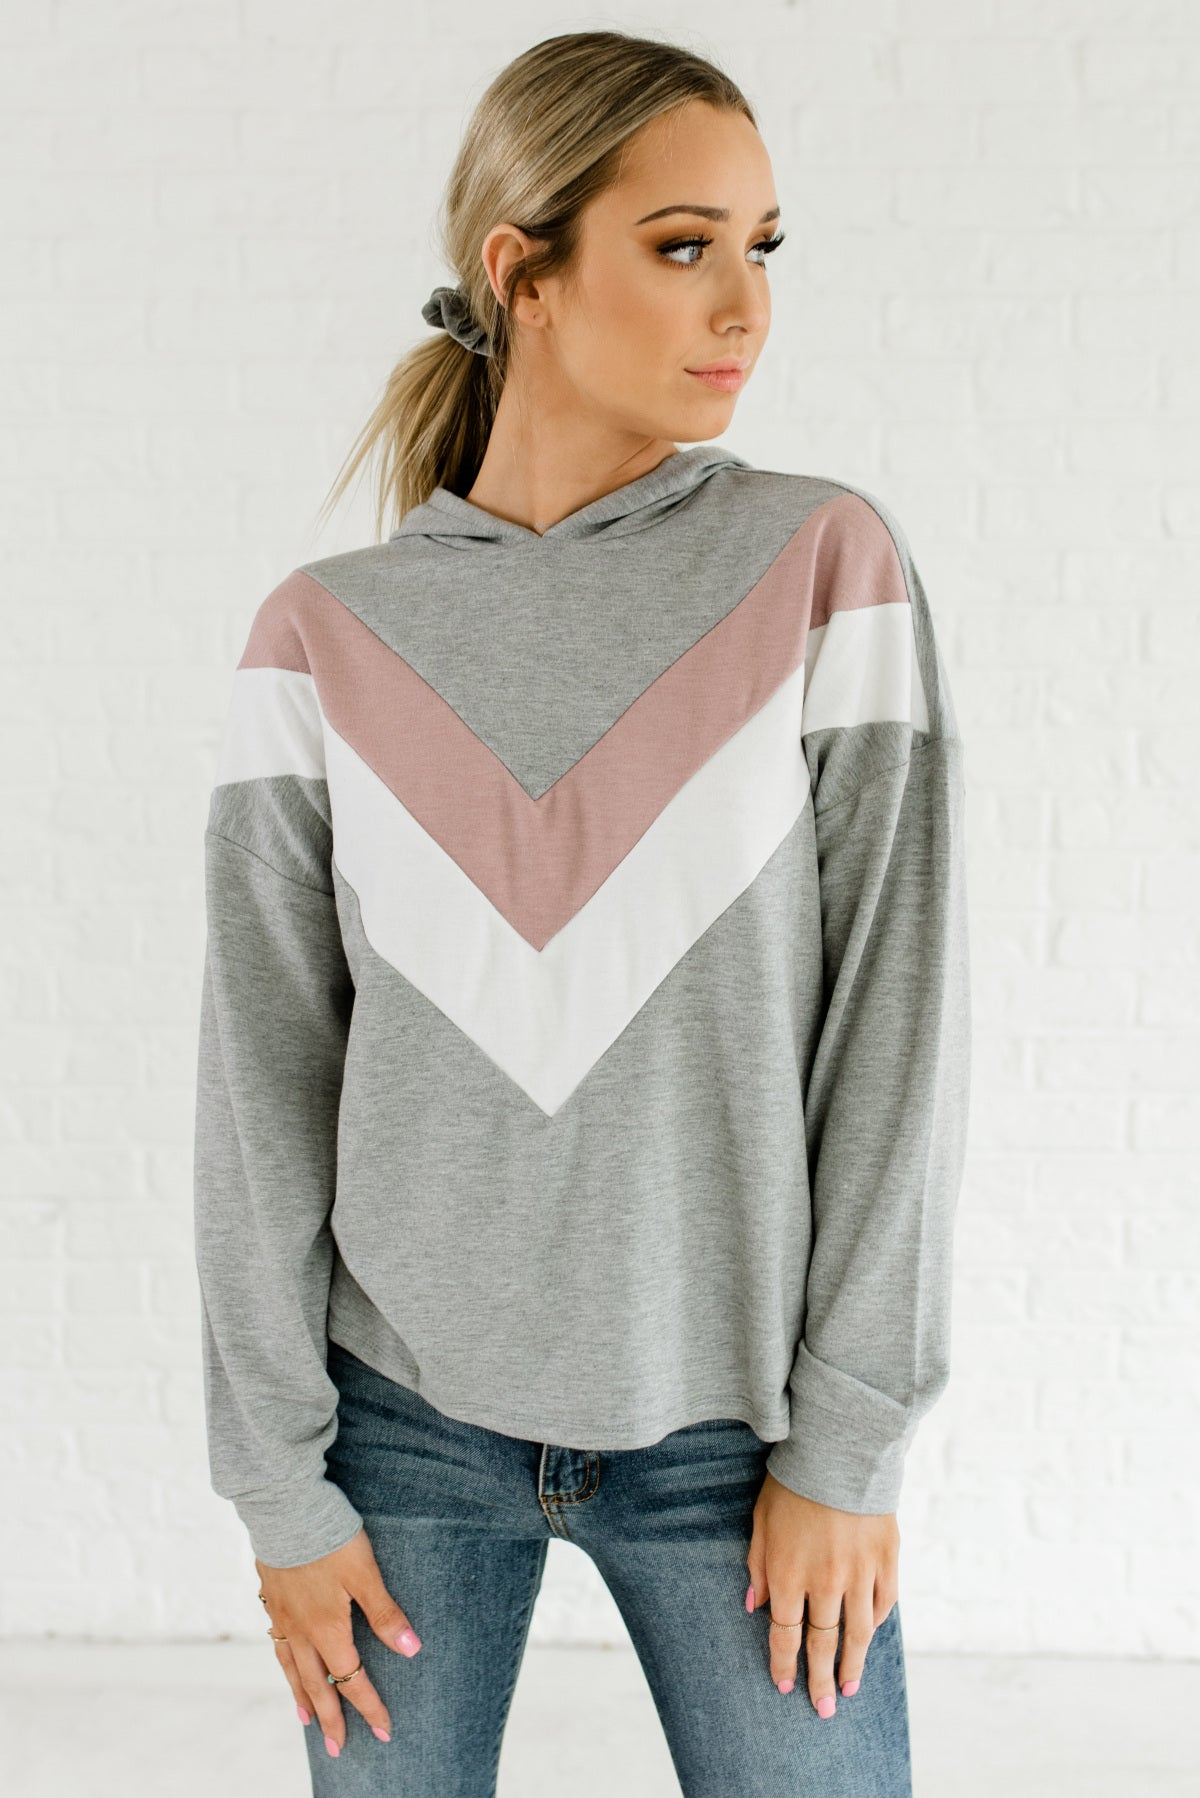 Heather Gray Mauve White Color Block Chevron Lightweight Hoodies and Outerwear